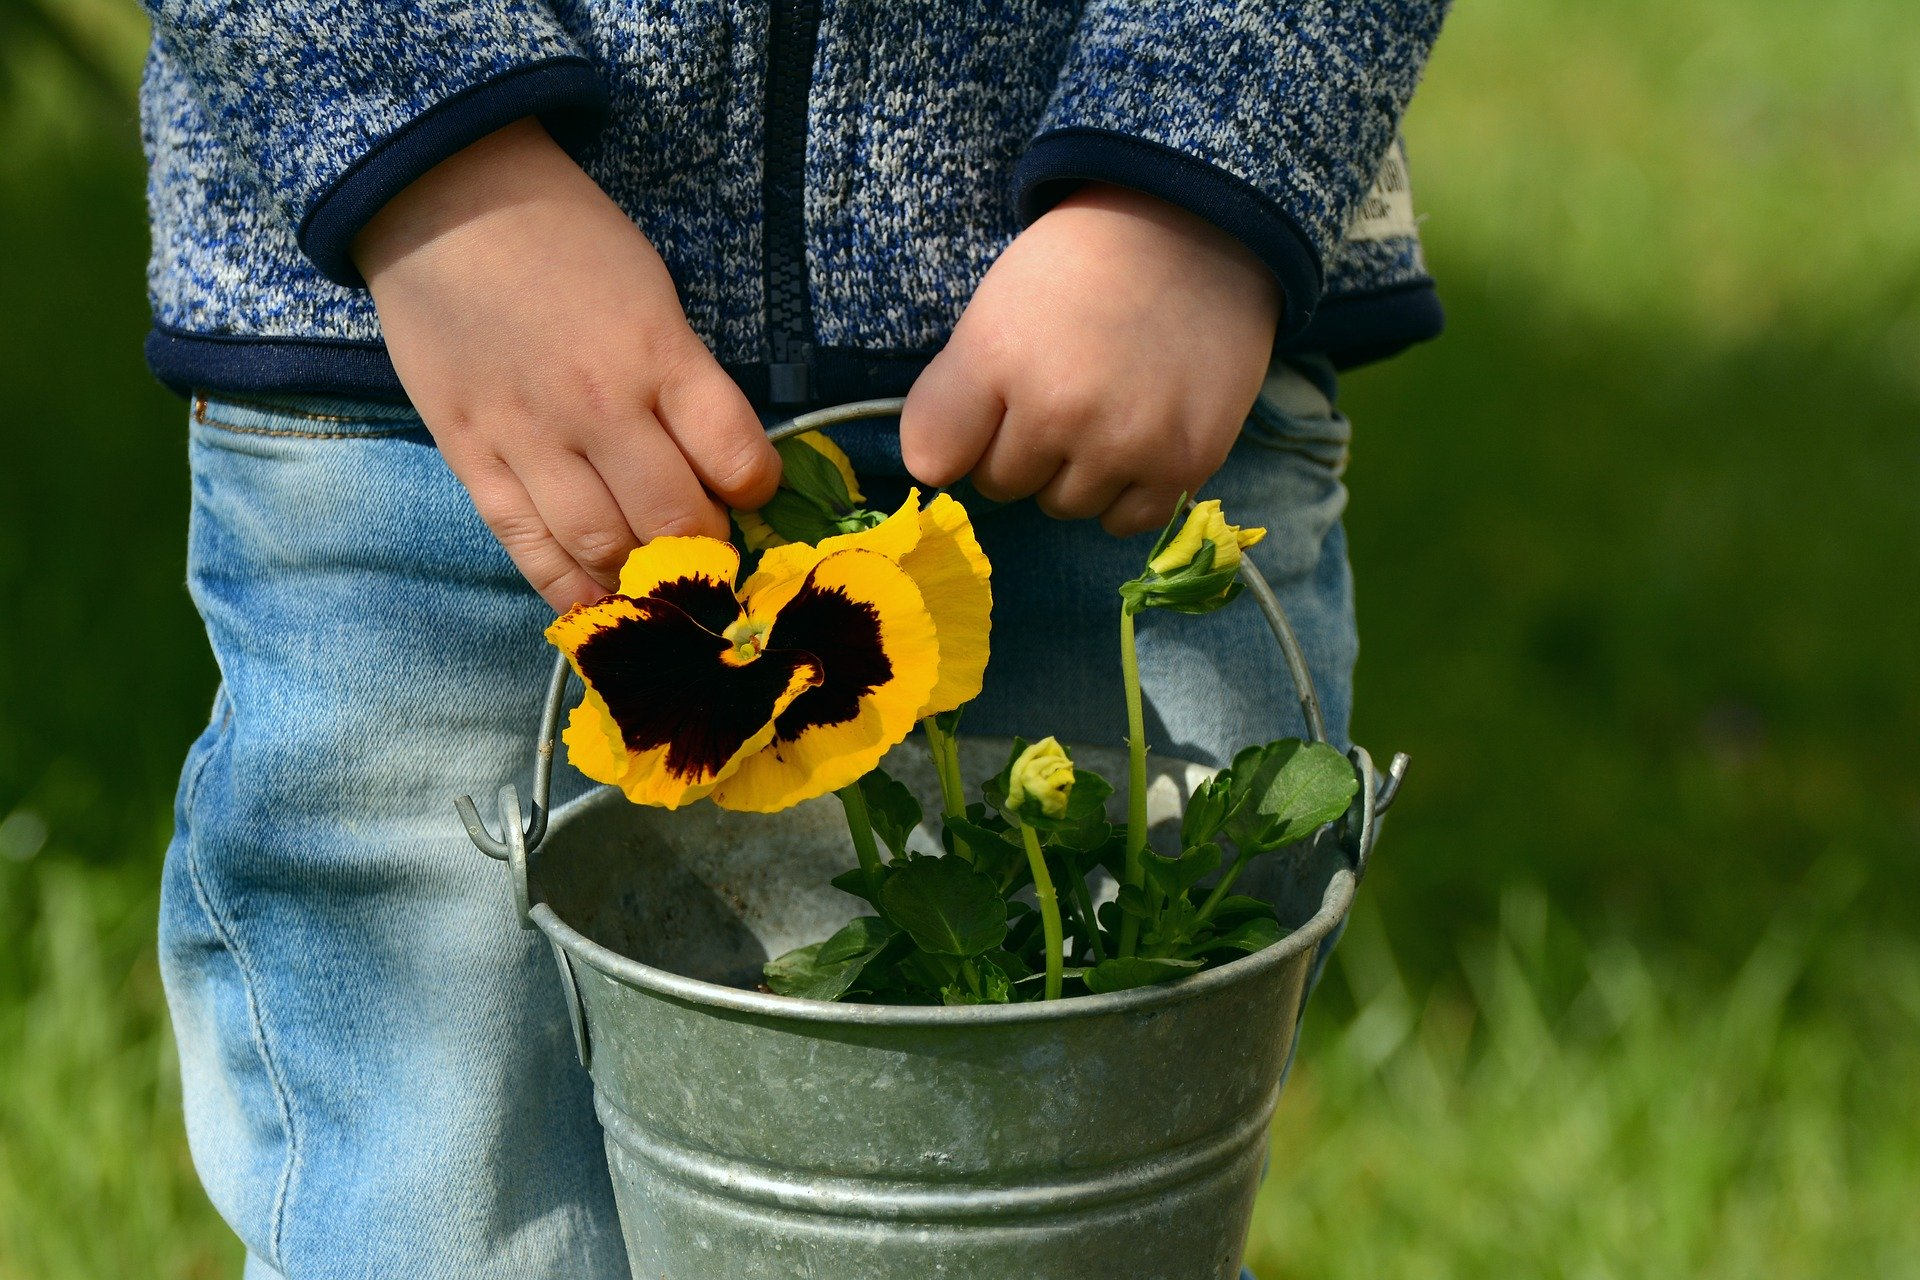 Child holding a Pansy Flower in a Bucket